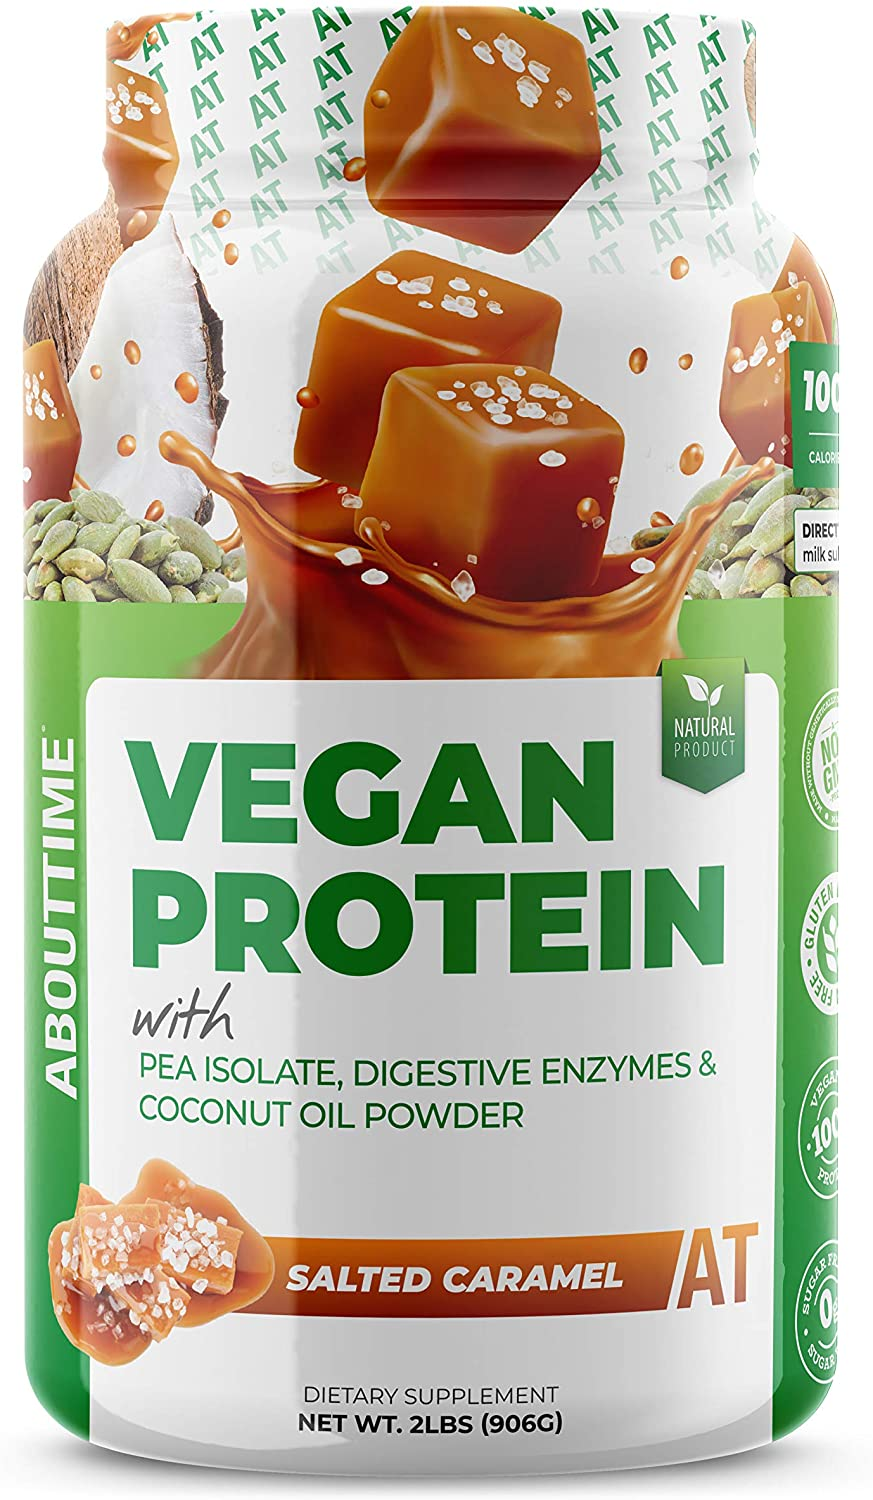 About Time Vegan Protein Supplement, Salted Caramel, 2 Pound